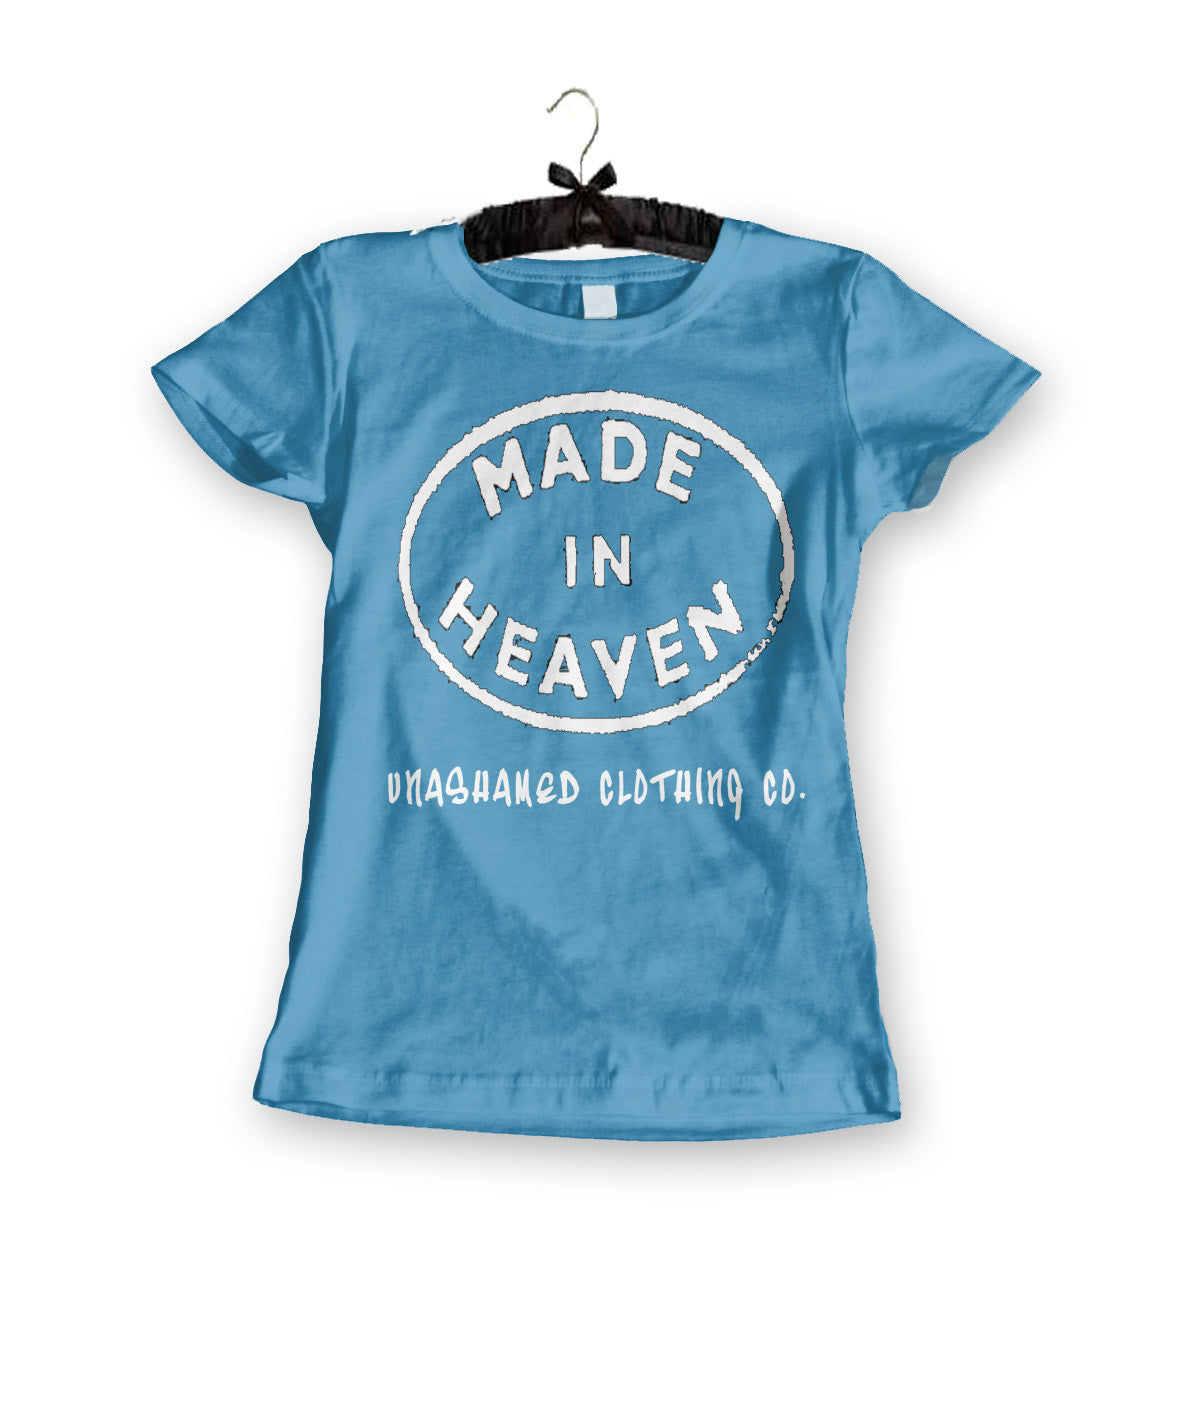 Made in Heaven Ladies Tee